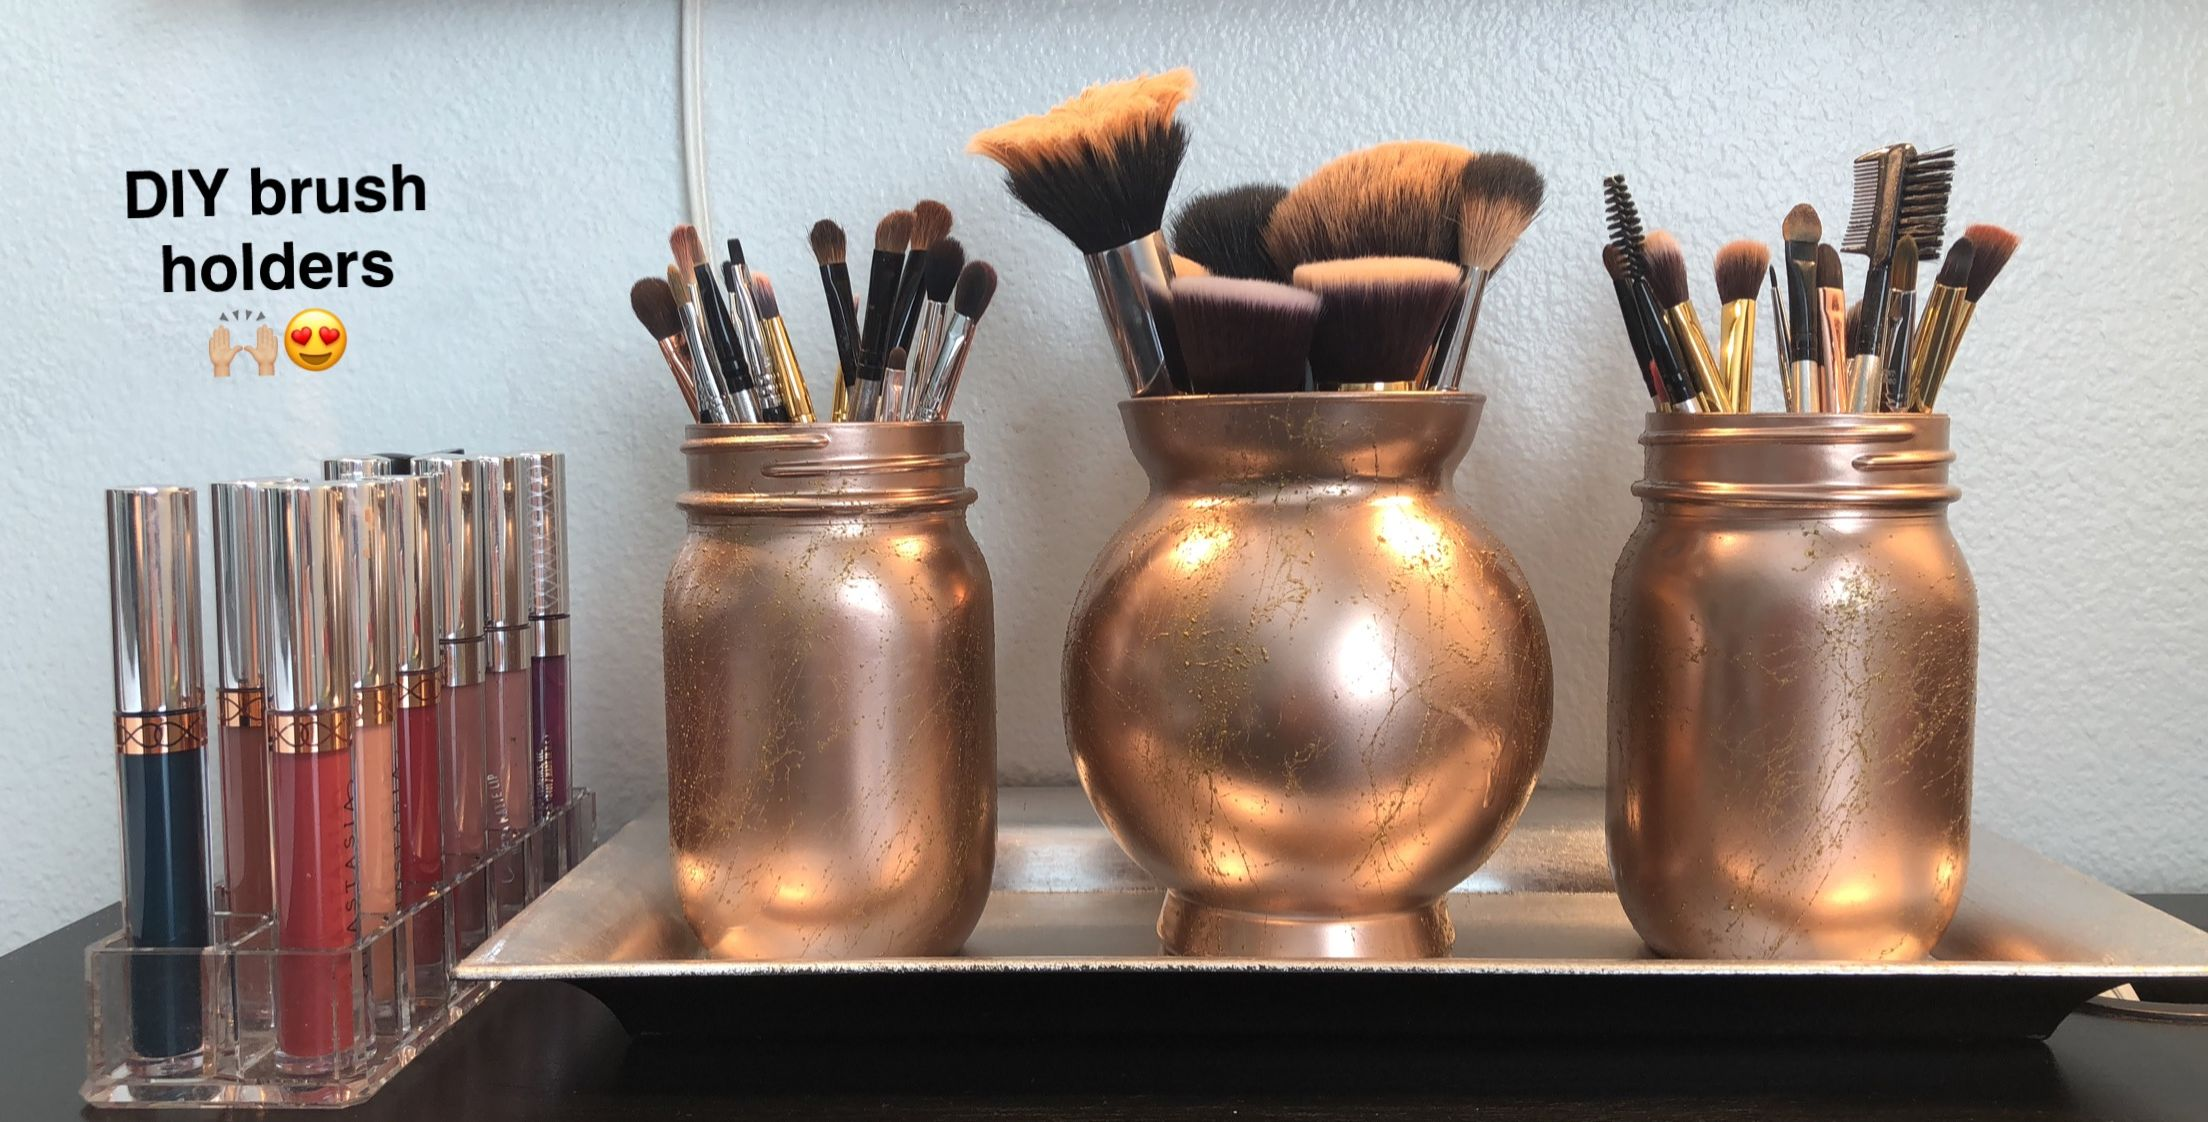 Rose Gold DIY Makeup Brush Holders Diy makeup brush